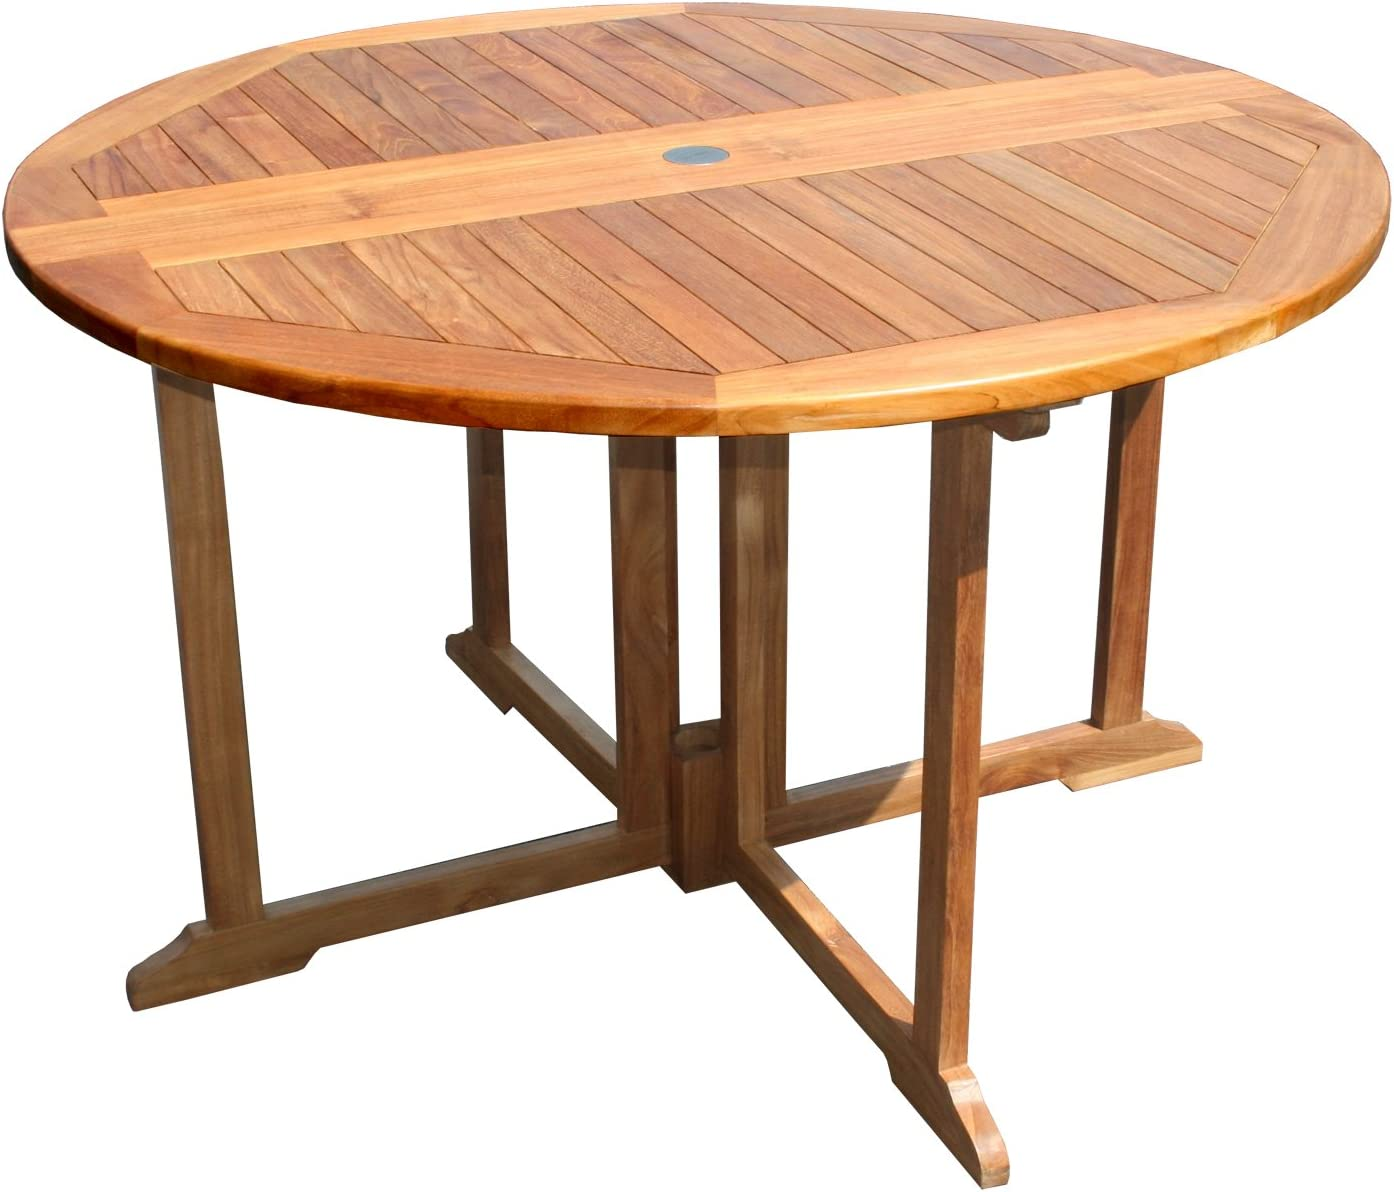 Teak Butterfly Round Outdoor Patio Folding Table